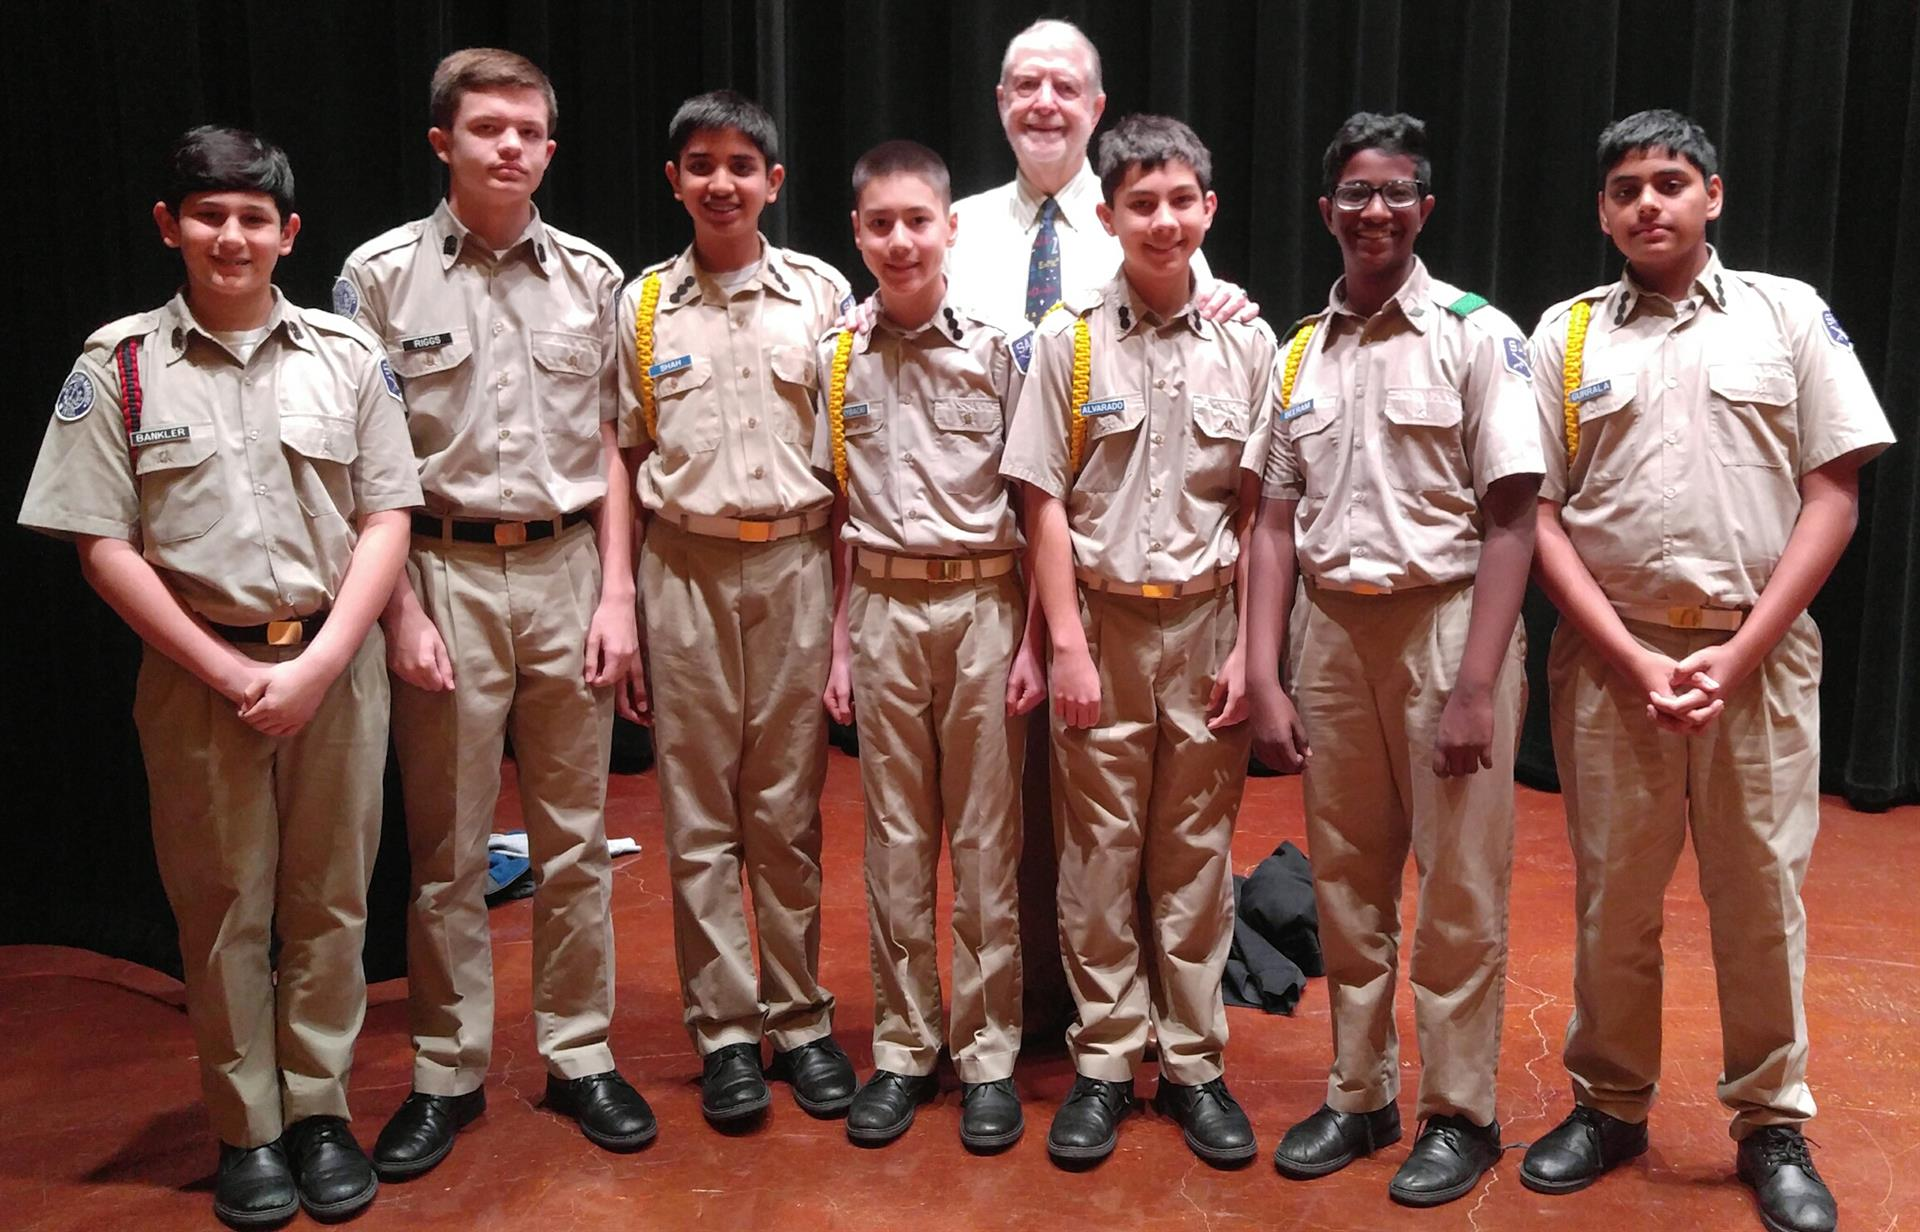 Mathletes place 2nd in MATHCOUNTS